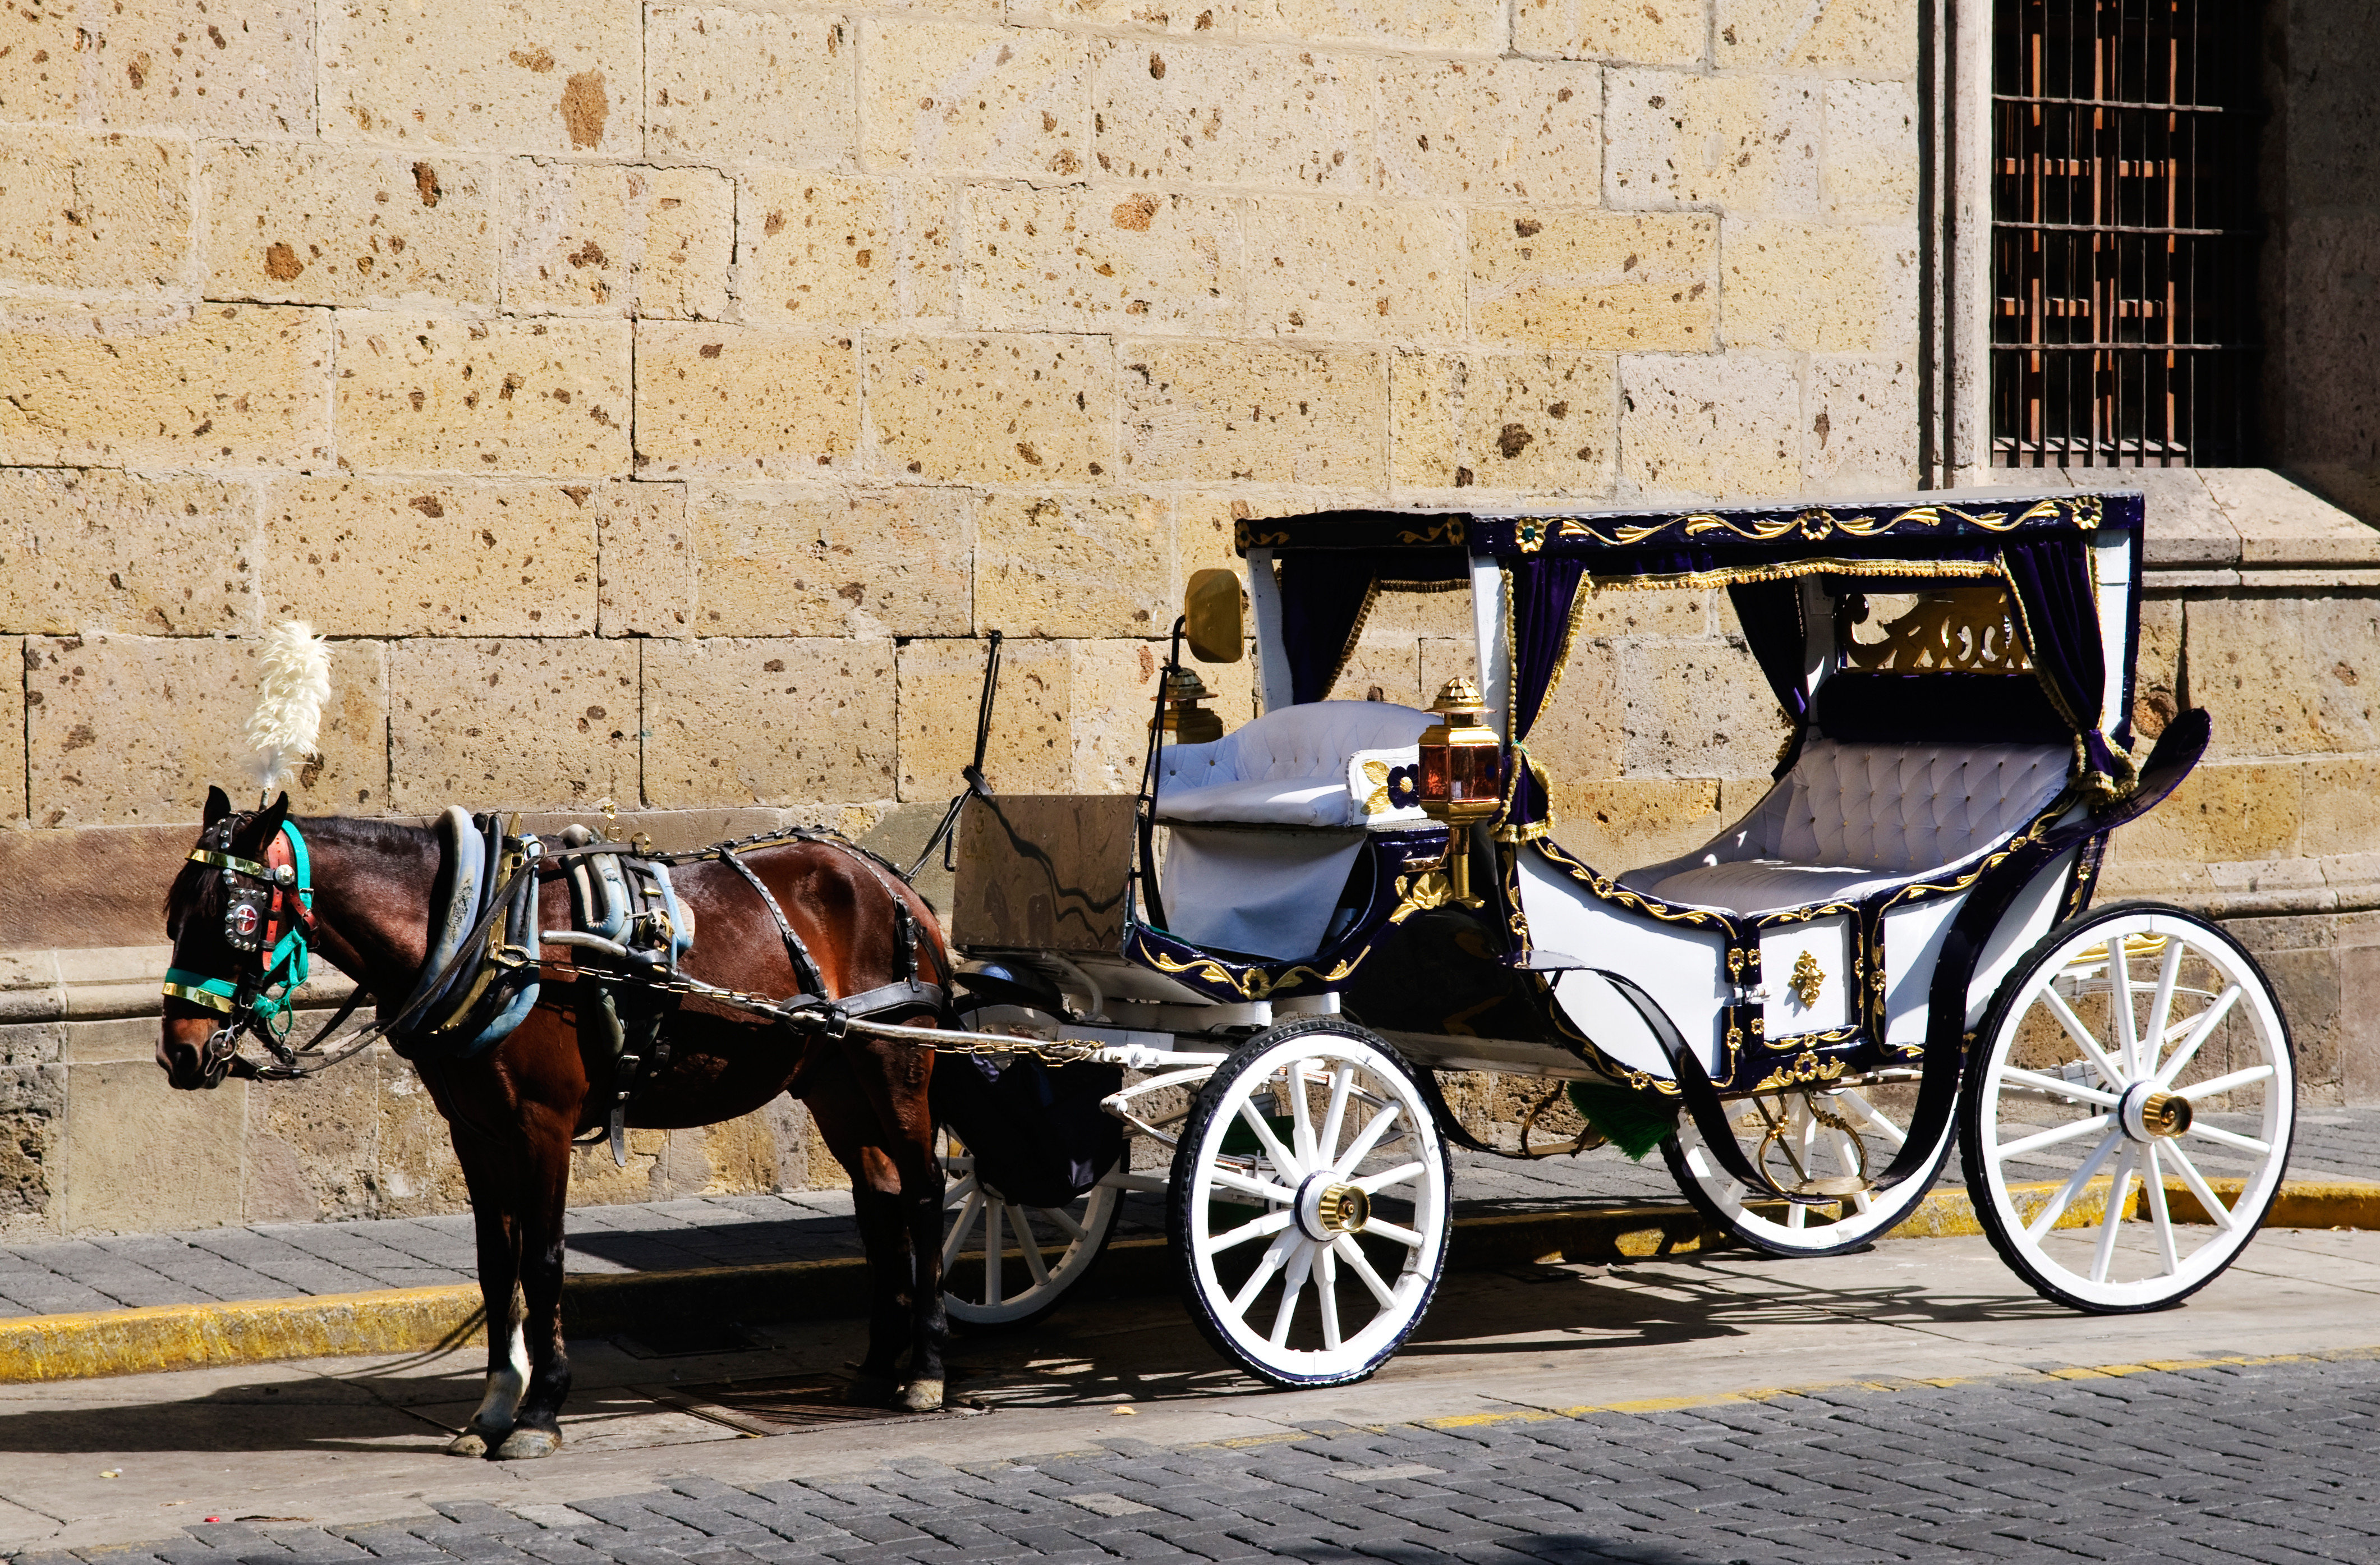 Entertainment Play Resort horse carriage building pulling road drawn horse and buggy street transport ground vehicle cart horse harness land vehicle horse-drawn vehicle car pulled attached curb